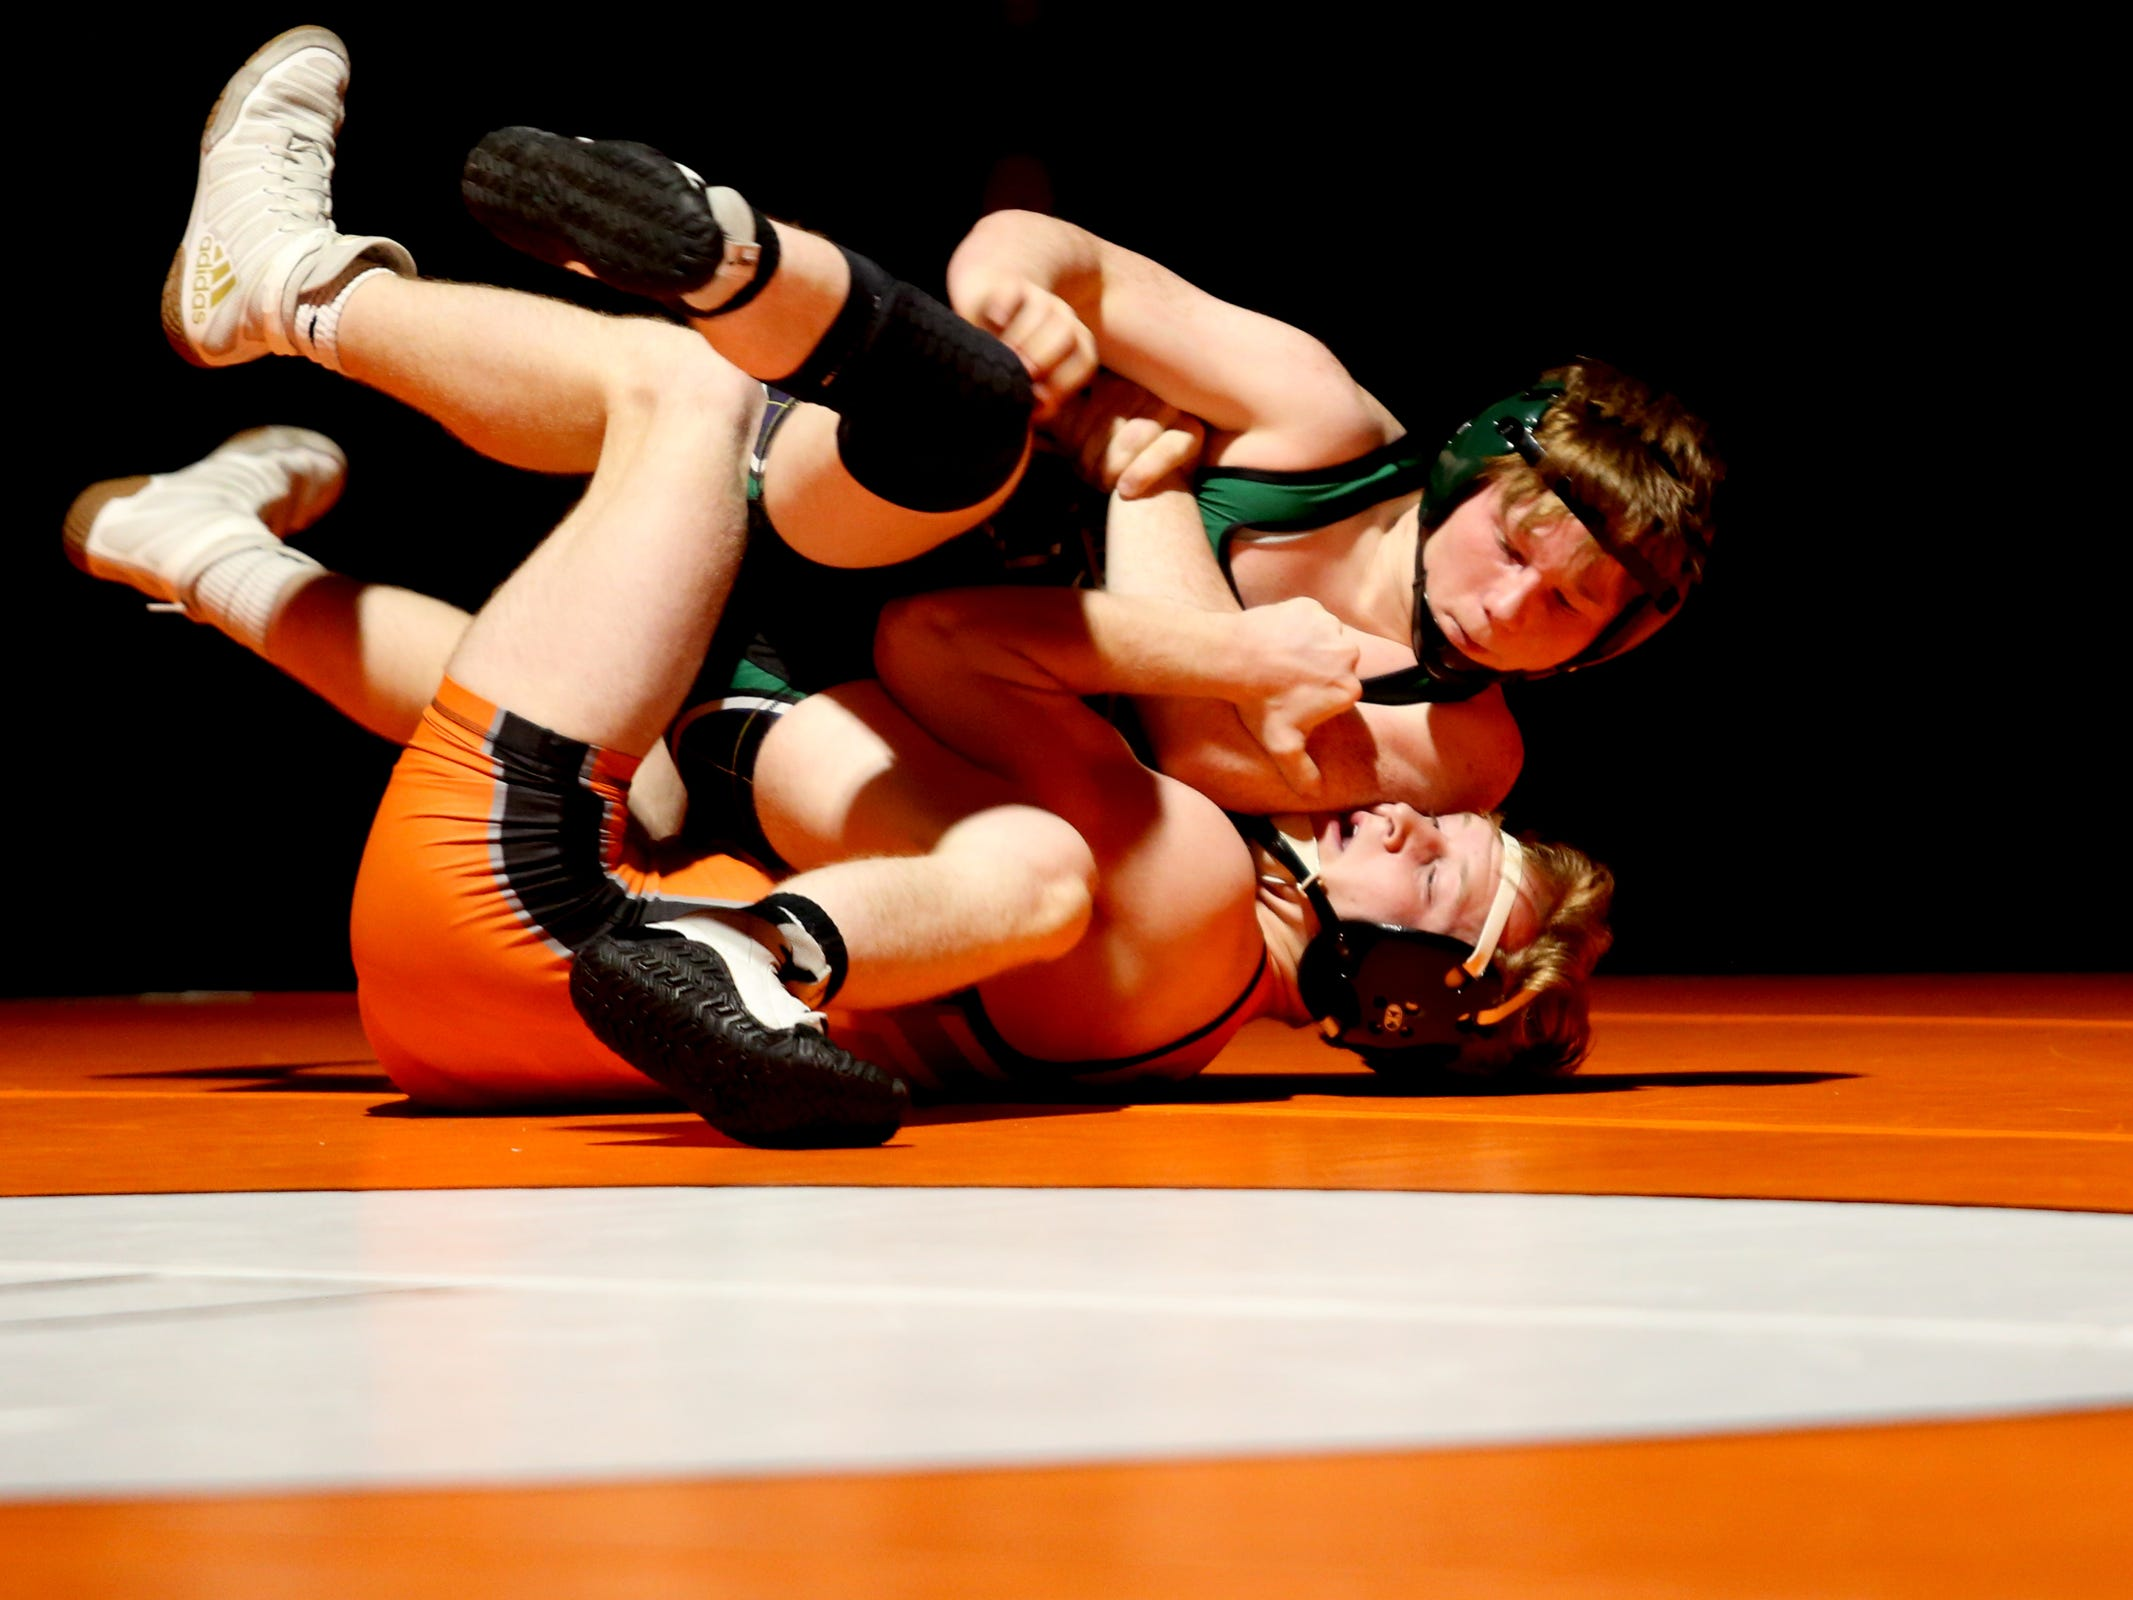 McKay's Patrick Neevel, top, and Sprague's Colby Hemmert compete in the 126 pound weight class during the McKay vs. Sprague wrestling meet at Sprague High School in Salem on Wednesday, Jan. 9, 2019.